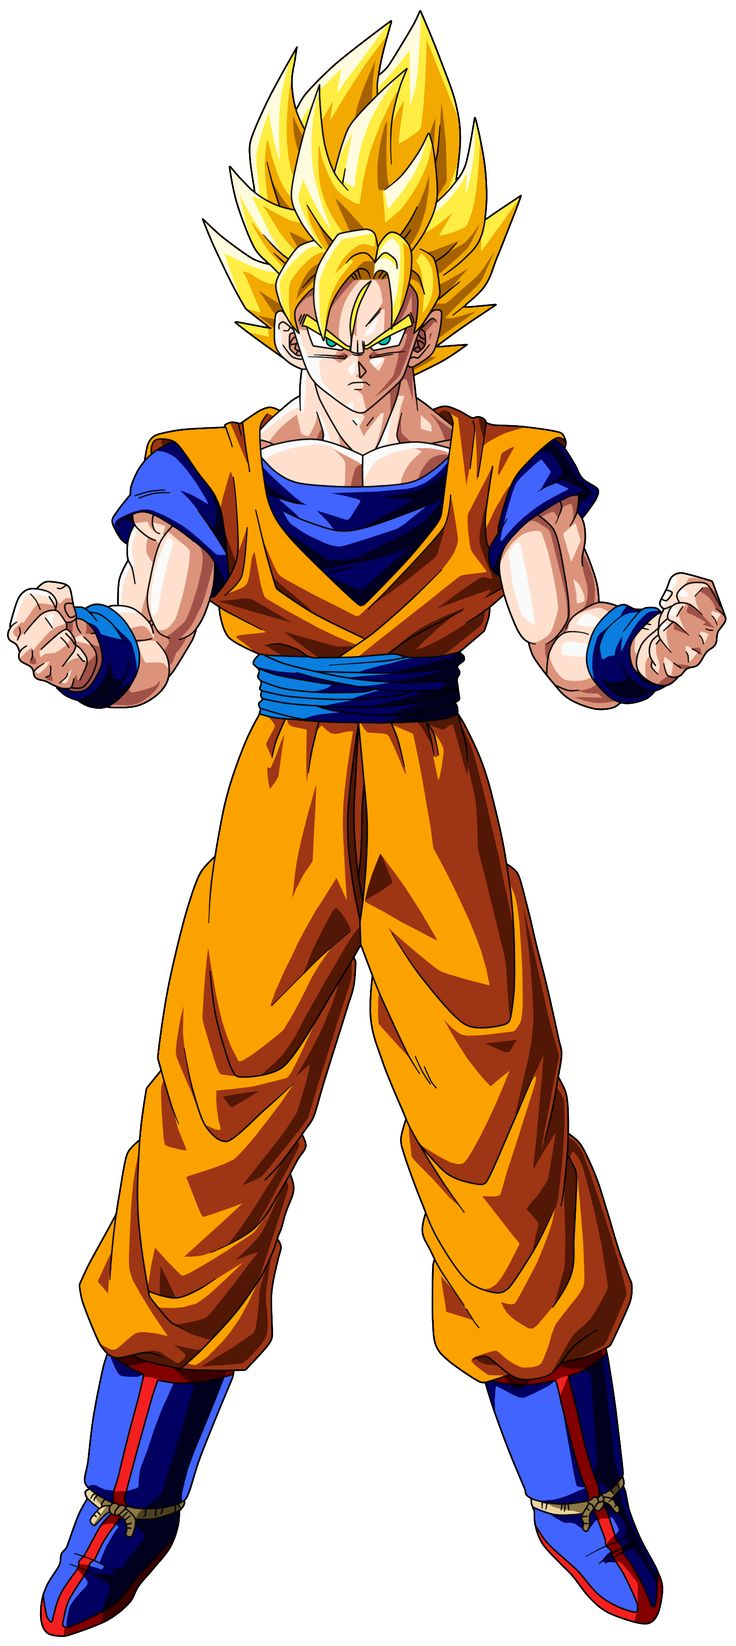 Super saiyan 1 goku google search anime pinterest - Goku 5 super saiyan ...